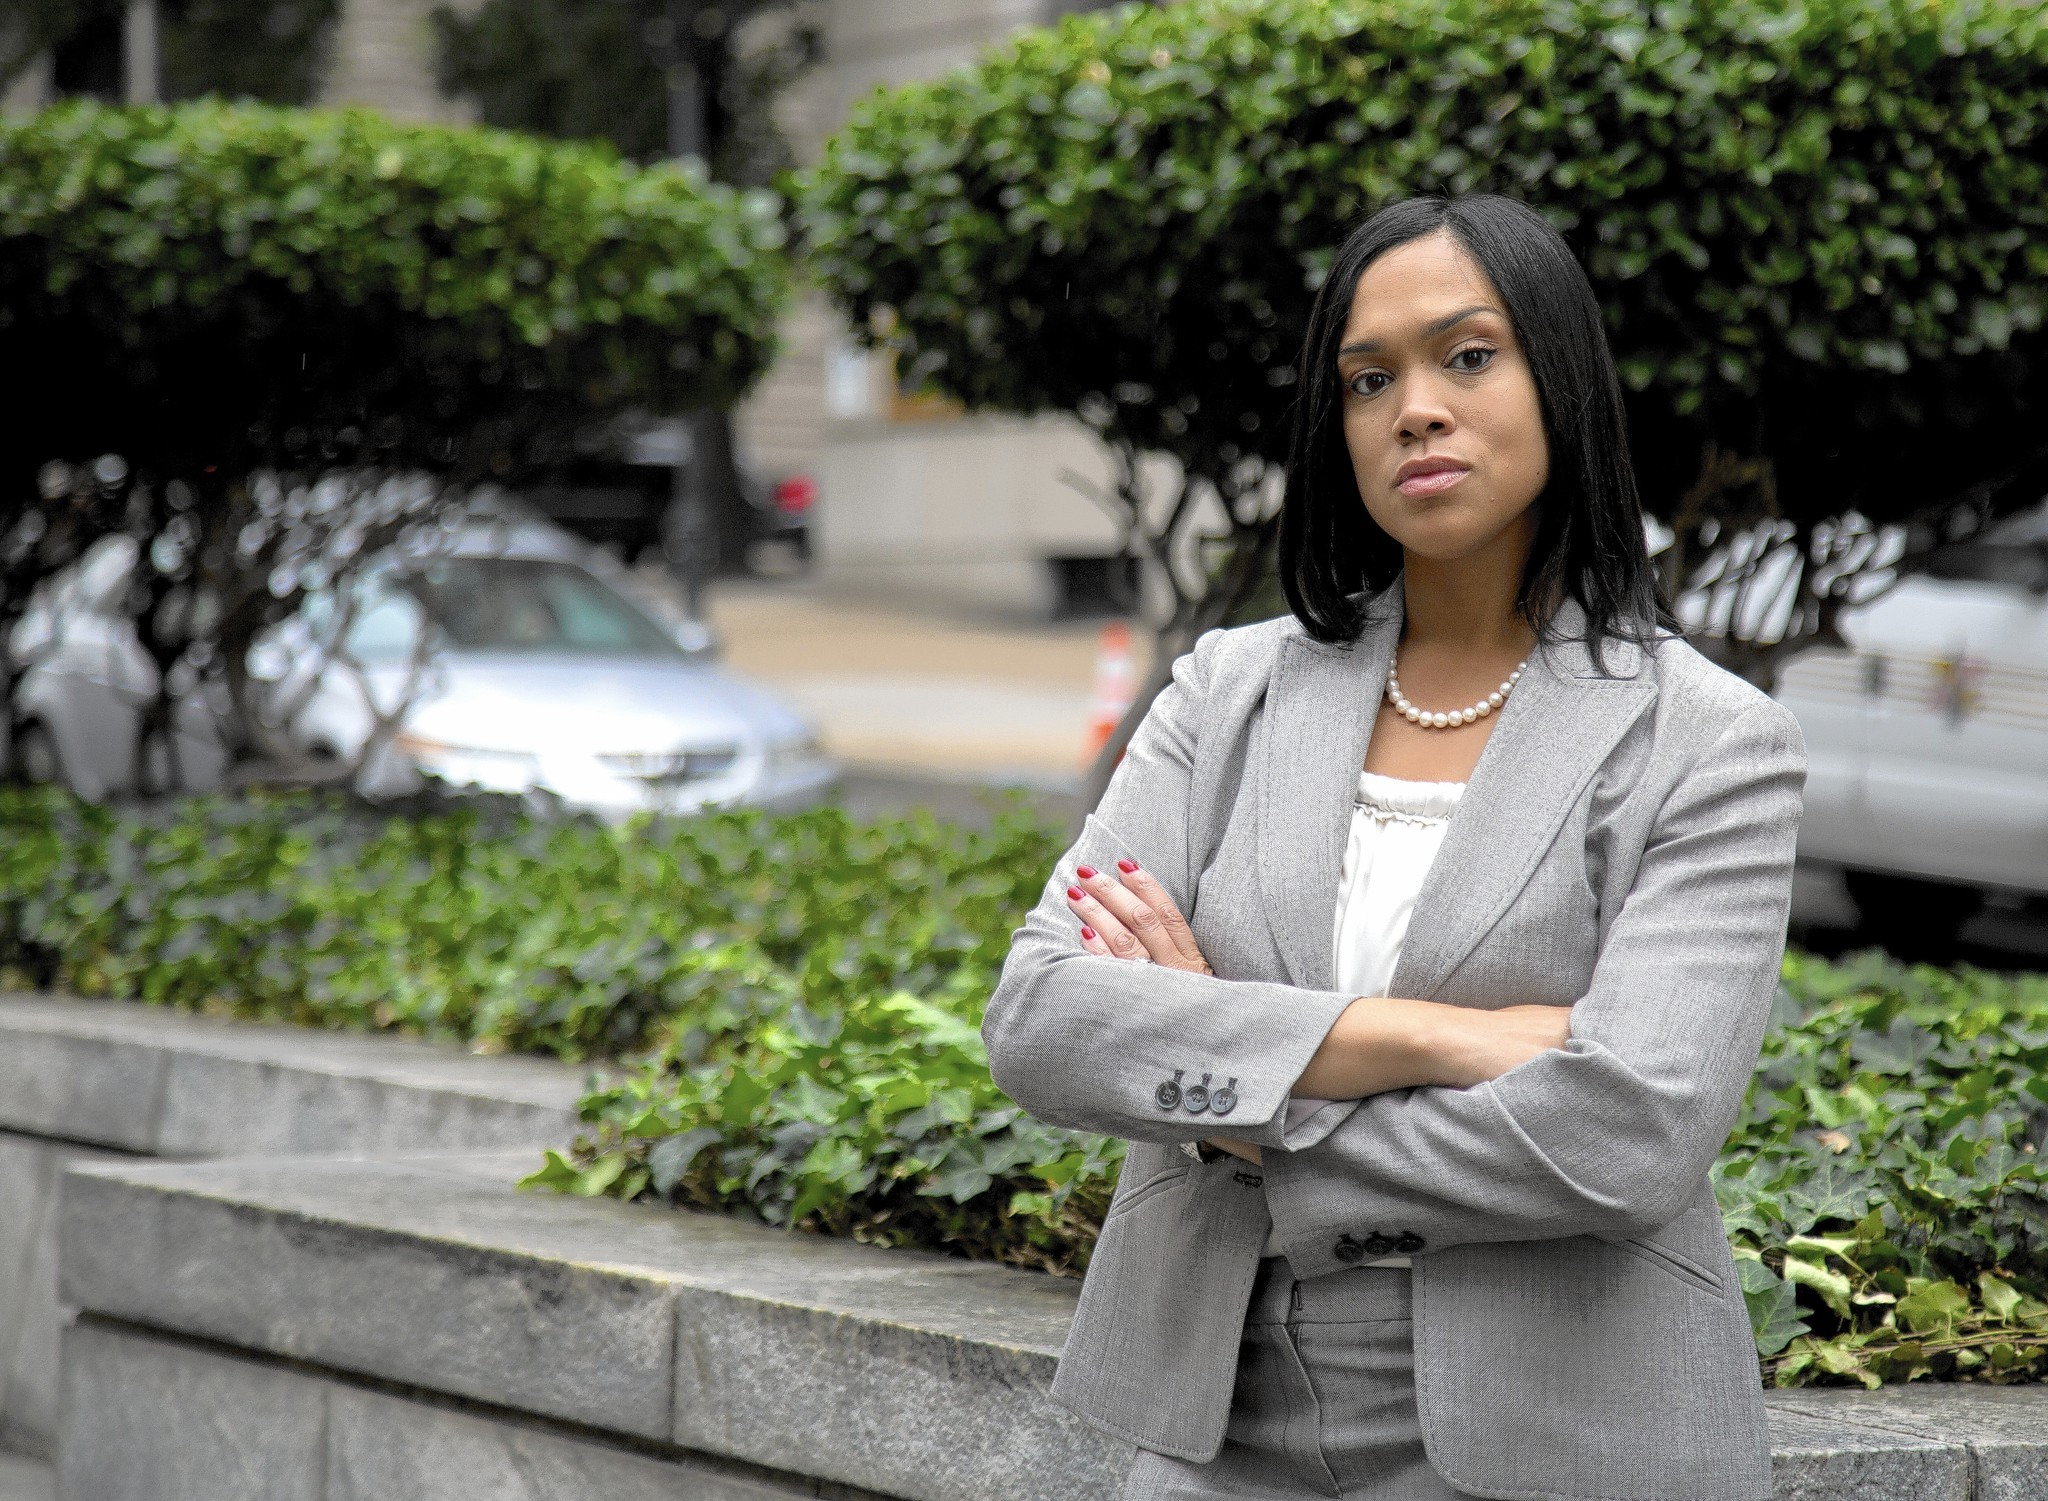 """Police brutality is completely inexcusable. I'm going to apply justice fairly, even to those who wear a badge,"" said Marilyn Mosby, Baltimore state's attorney."